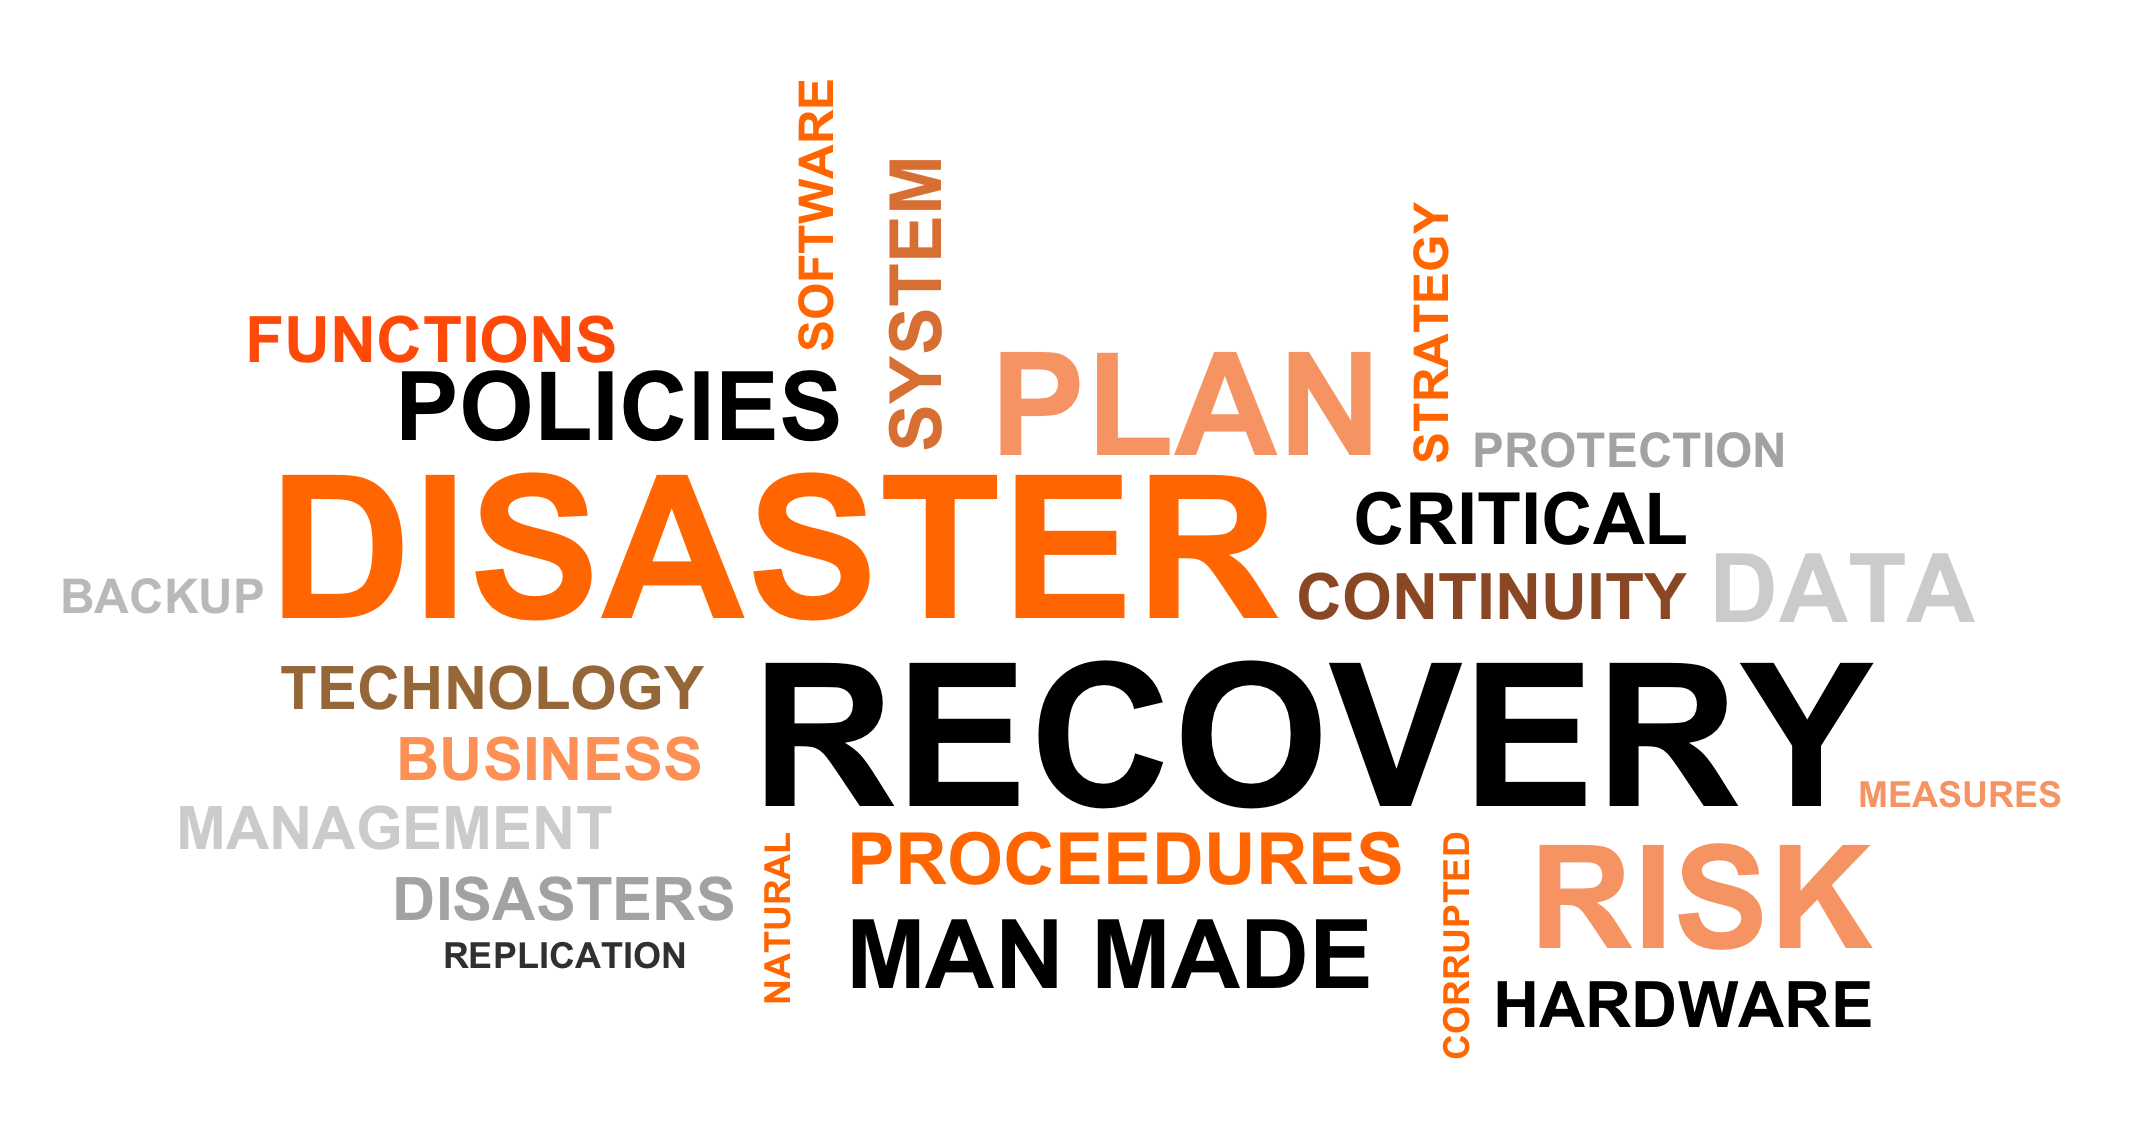 Disaster Recovery Plans Enhance Systems Mid Ulster Cookstown Magherafelt Dungannon Belfast